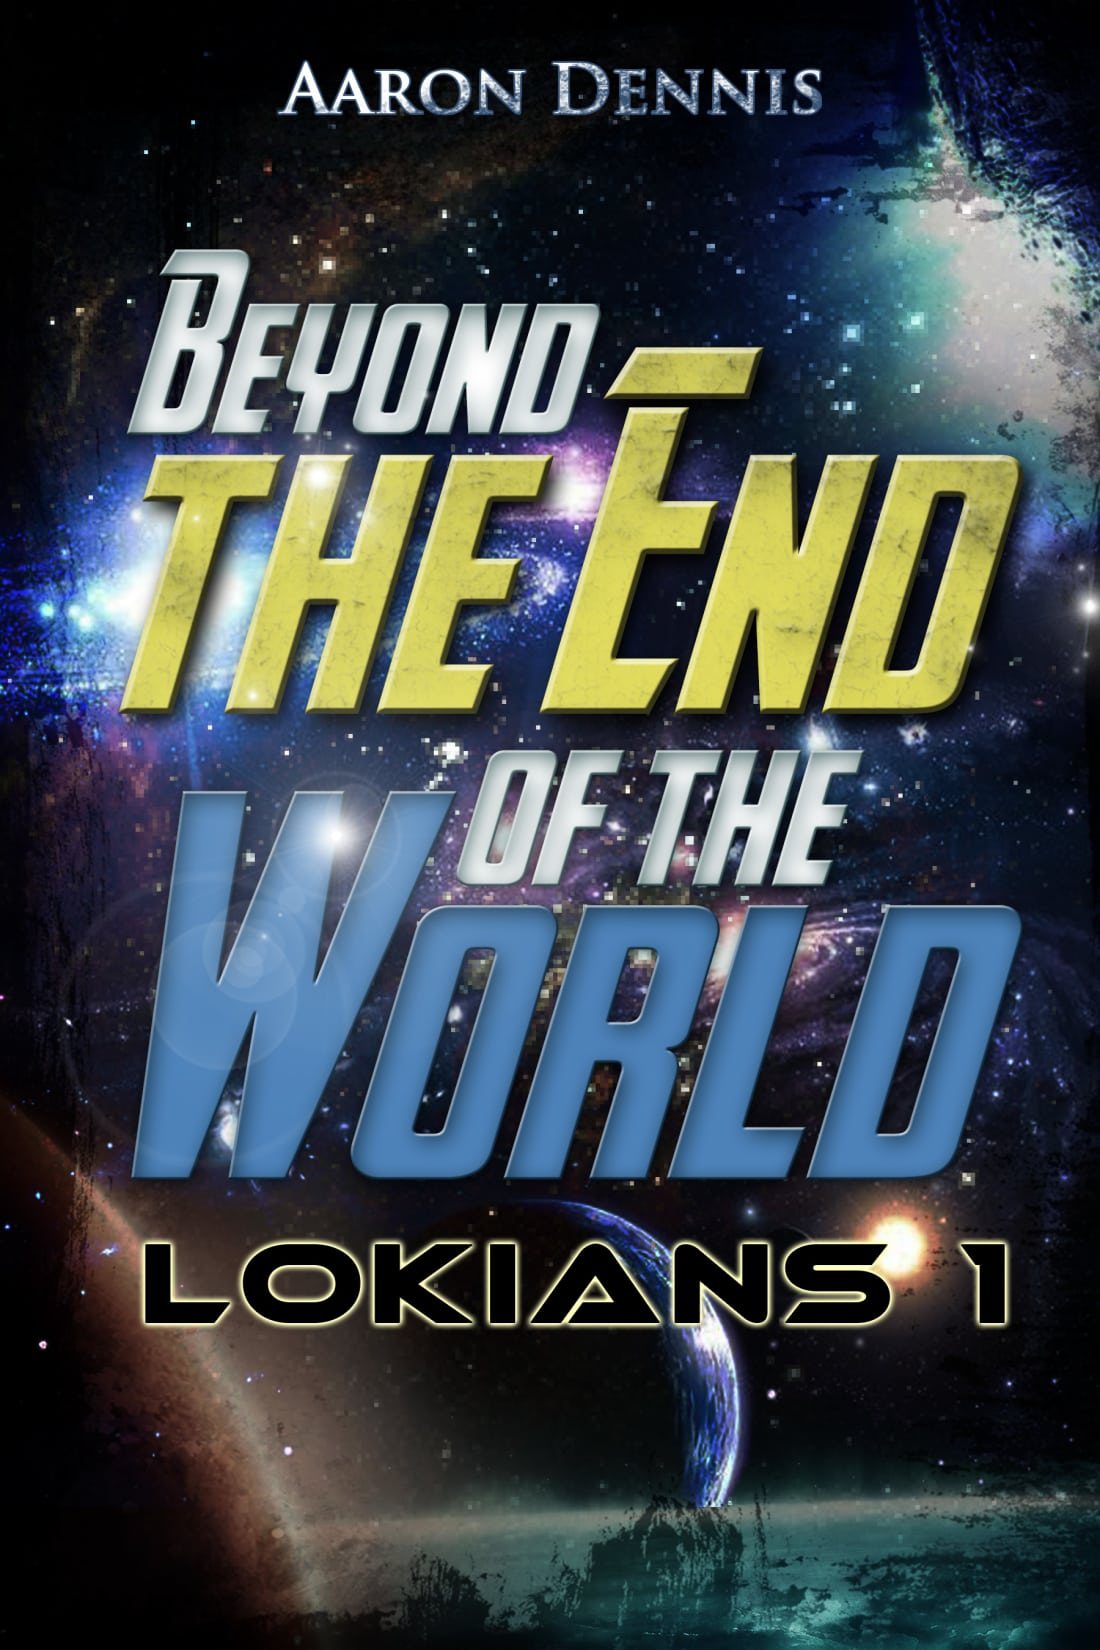 Part 18 of Beyond the End of the World, Lokians 1